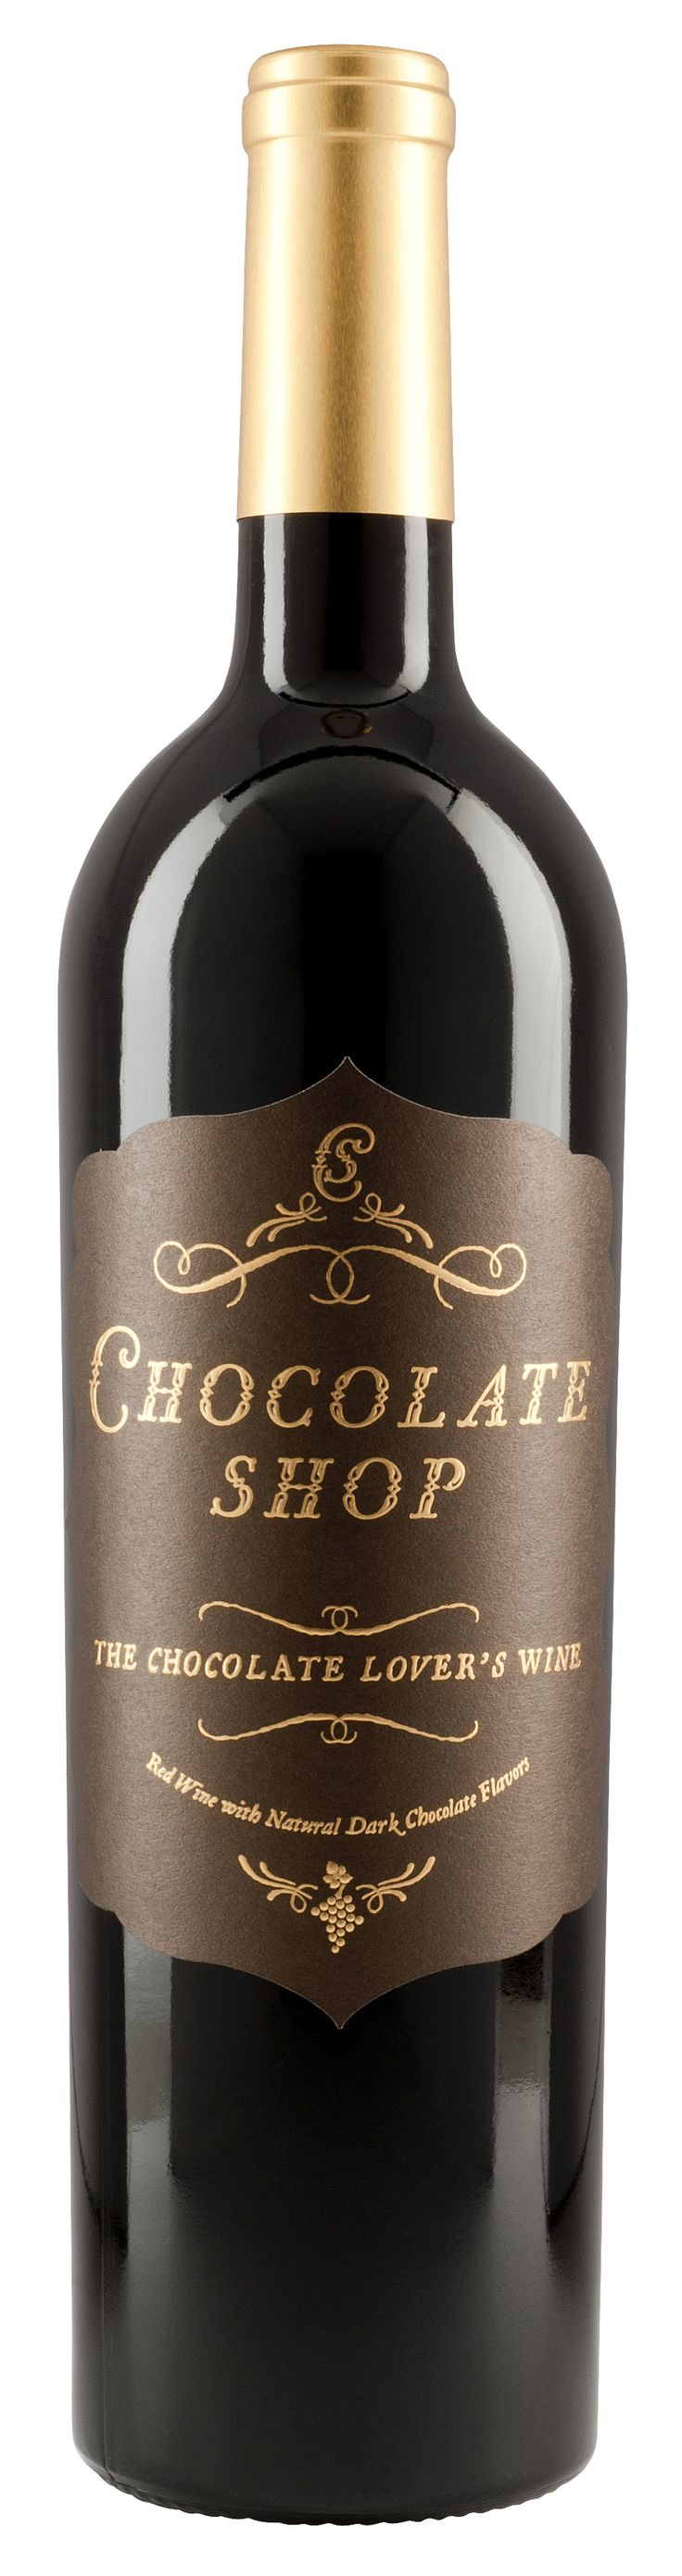 I have to try this.... smells and tastes like dark chocolate but it is red wine!! Yes. A woman's nightmare and heaven all in one bottle.